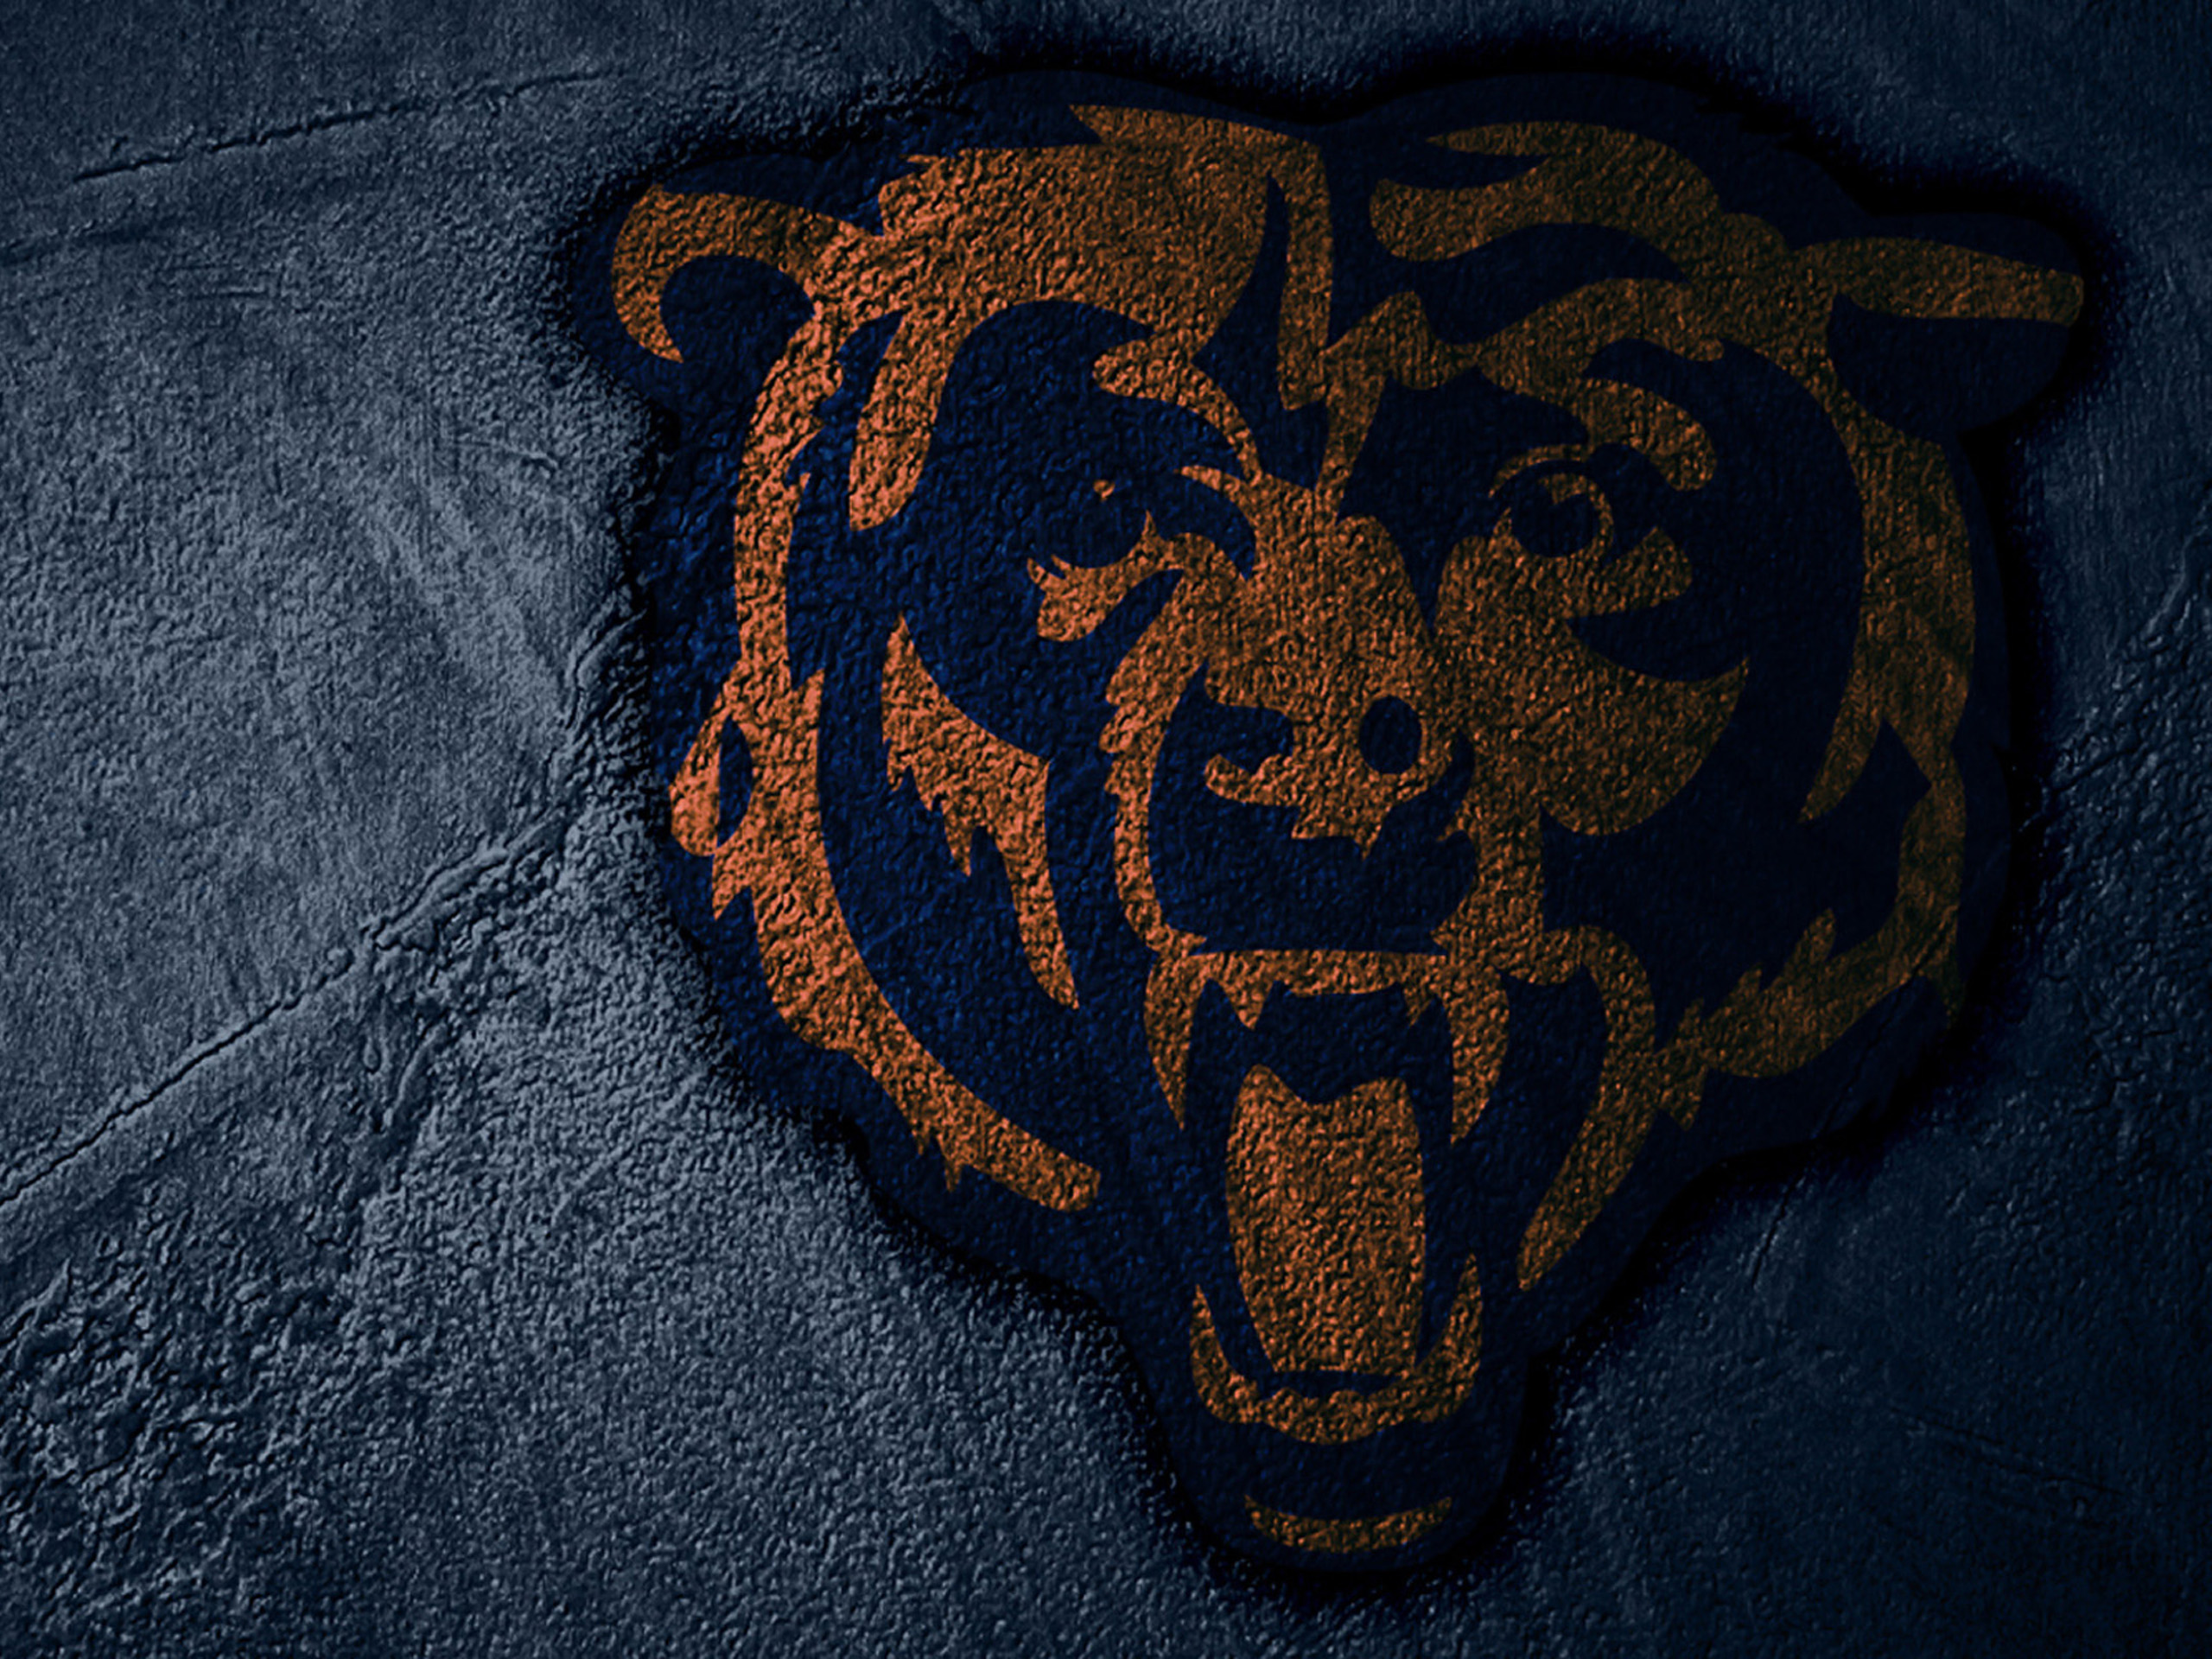 related chicago bears 23976 12 16 2010 chicago bears wallpaper ygytq 2560x1920